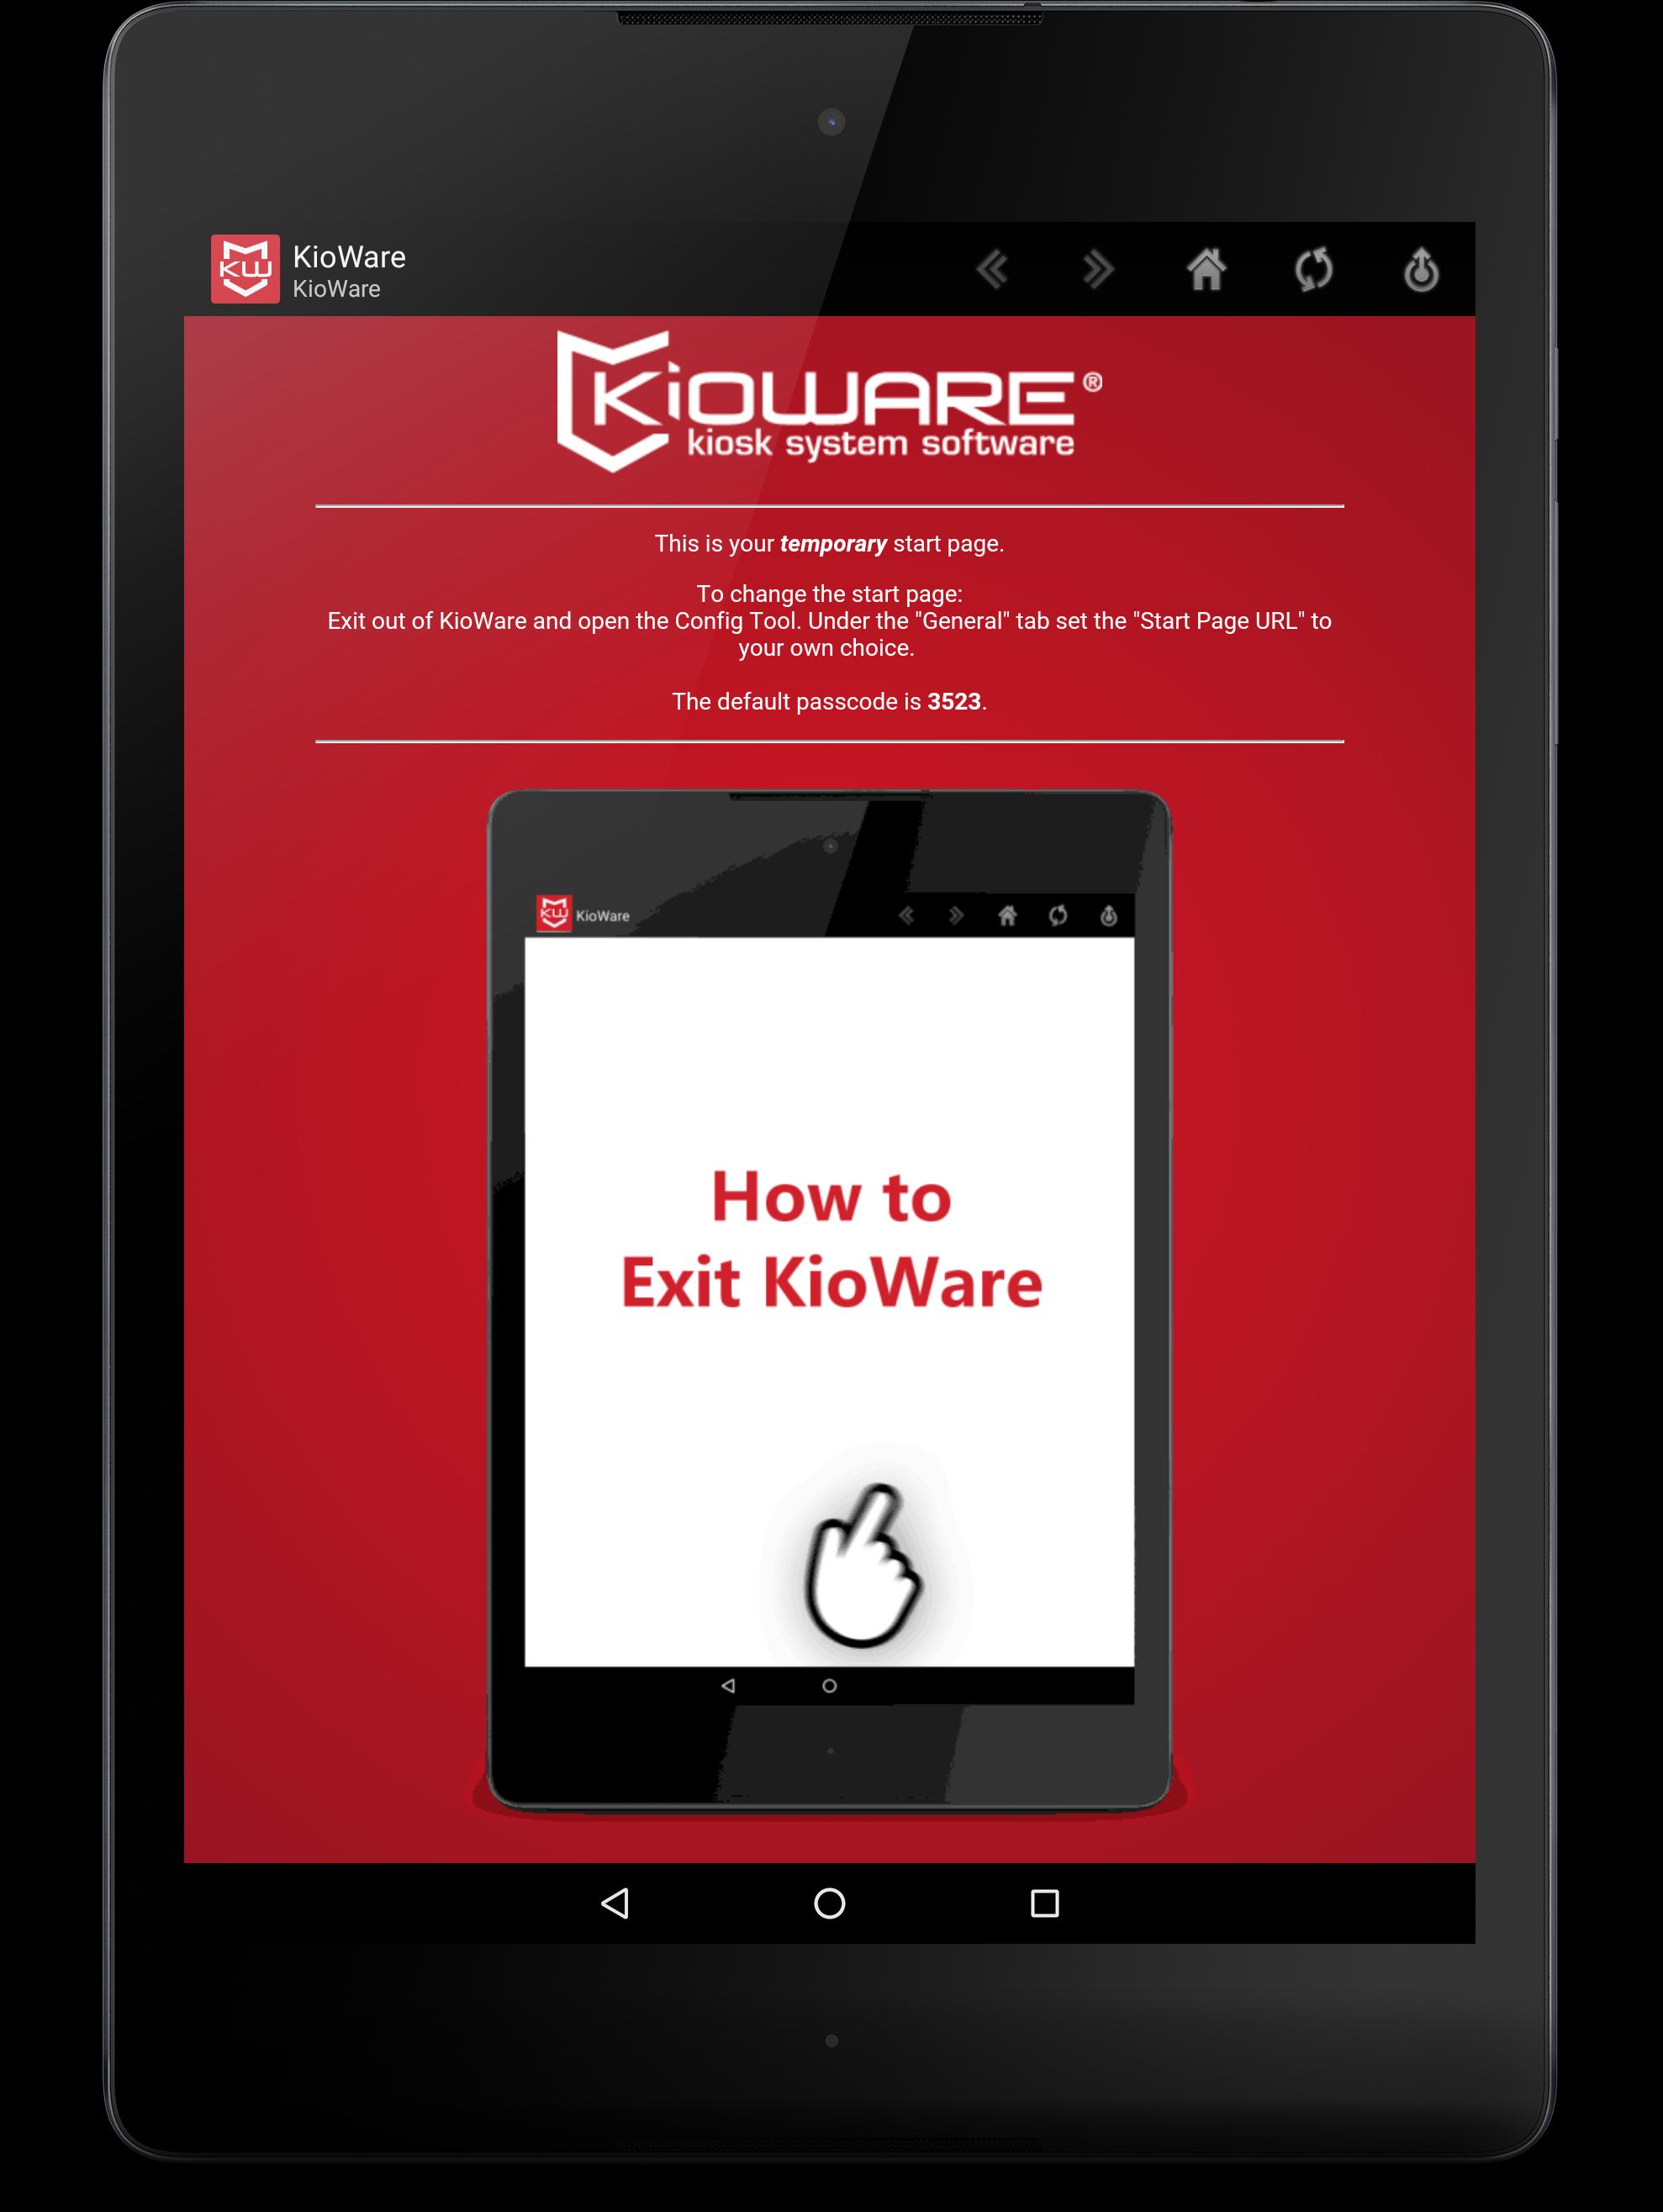 KioWare for Android Kiosk App - Kiosk Software for Android